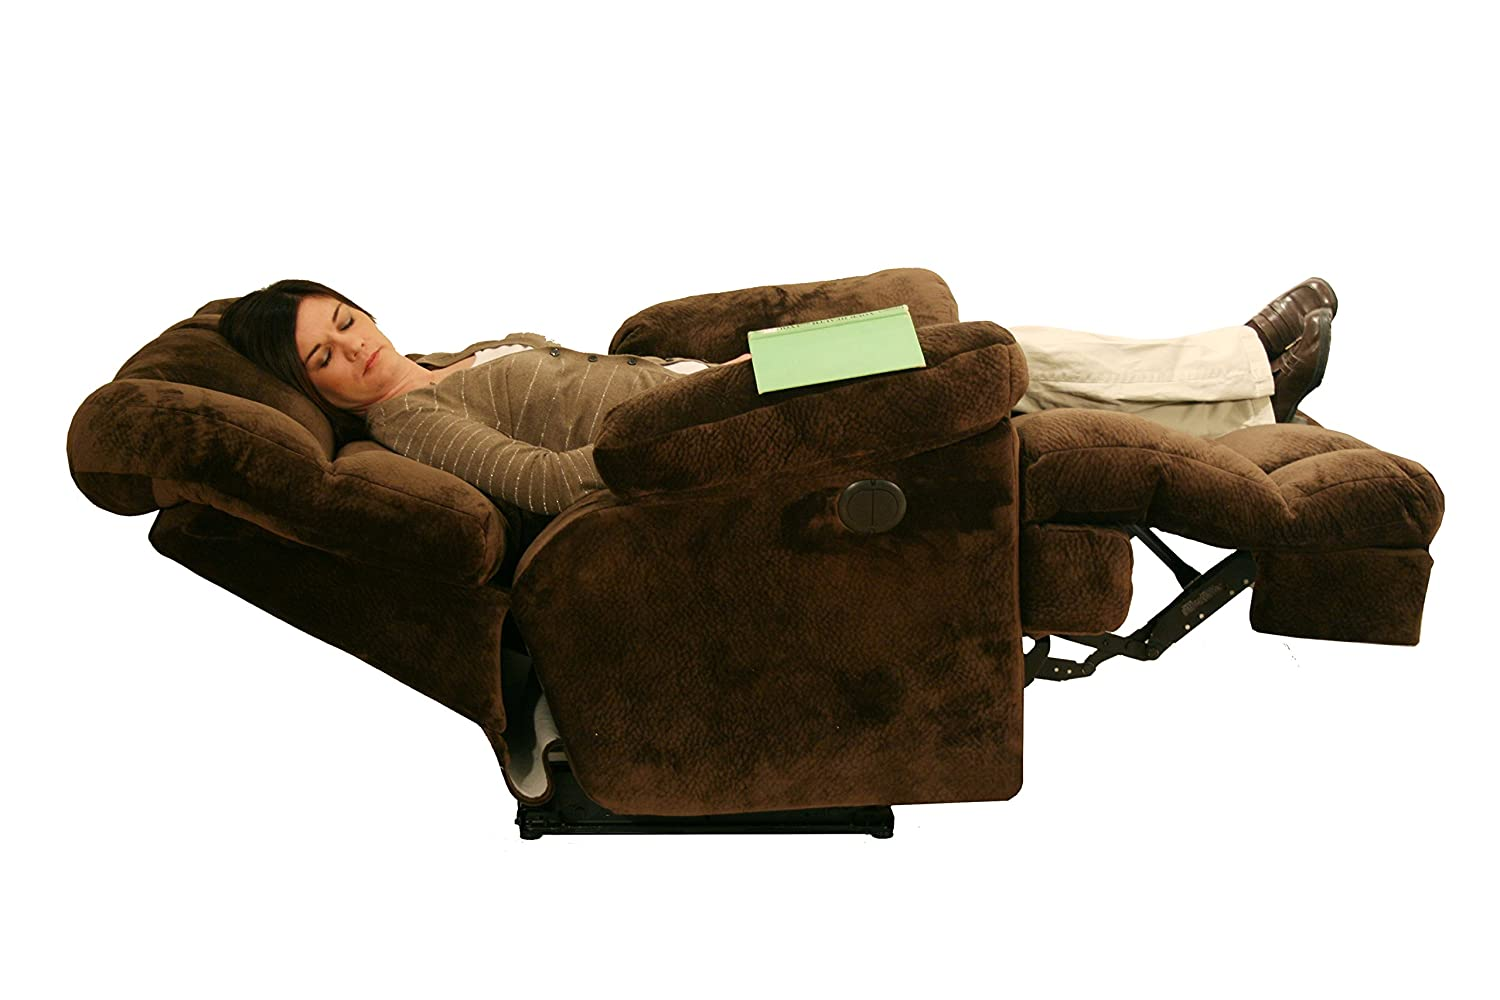 american of design image ideas jackpot catnapper manufacturing furniture chaise recliners top warehouse reclining lovely